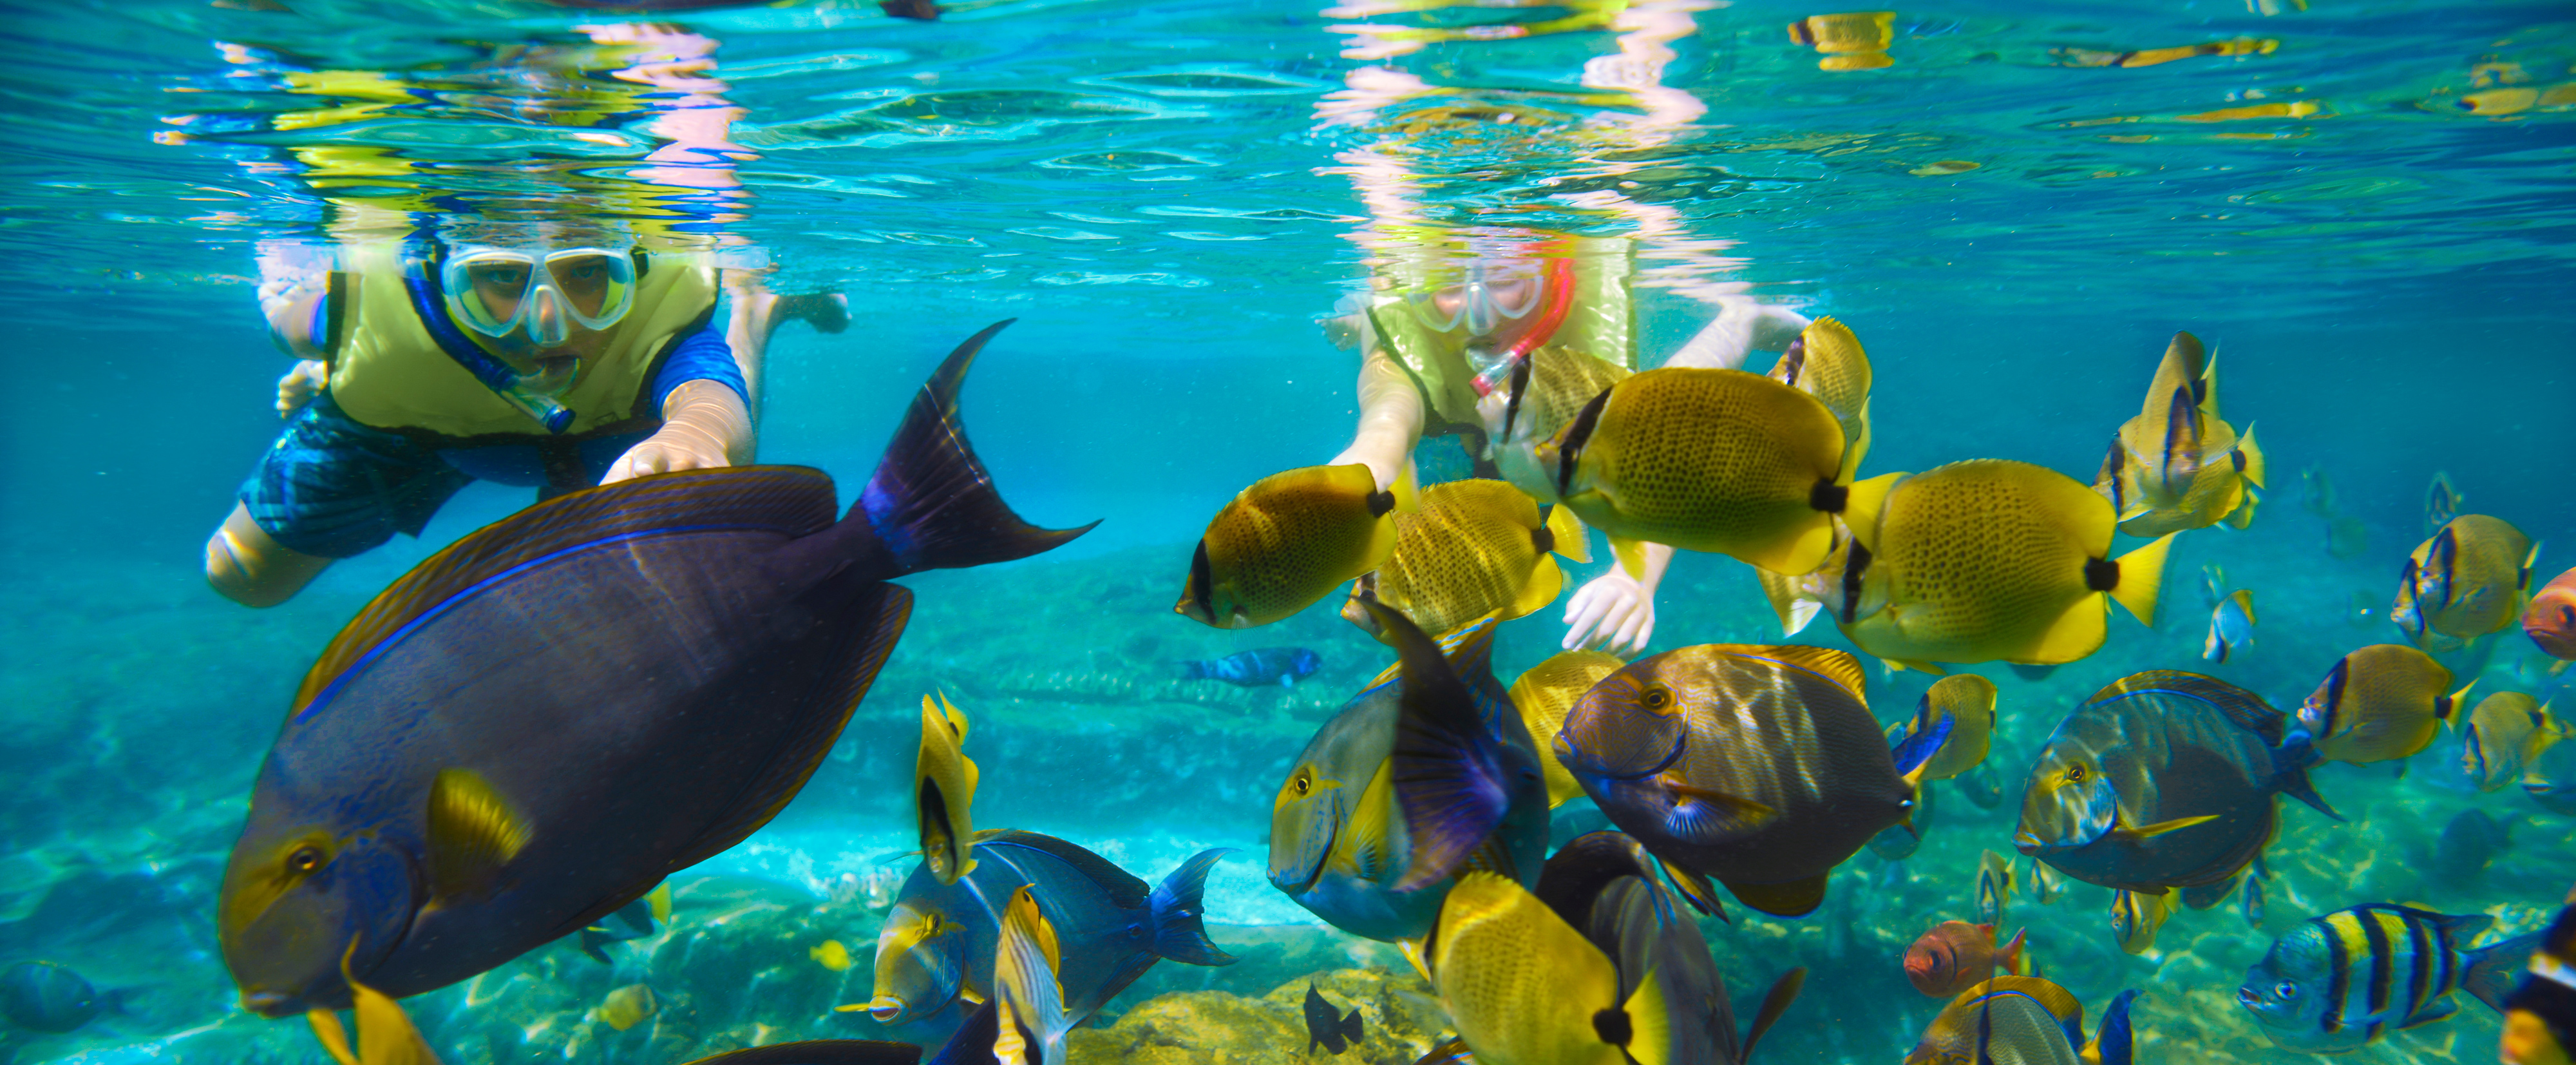 Young Guests swim toward a school of tropical fish while snorkeling in the waters of Rainbow Reef